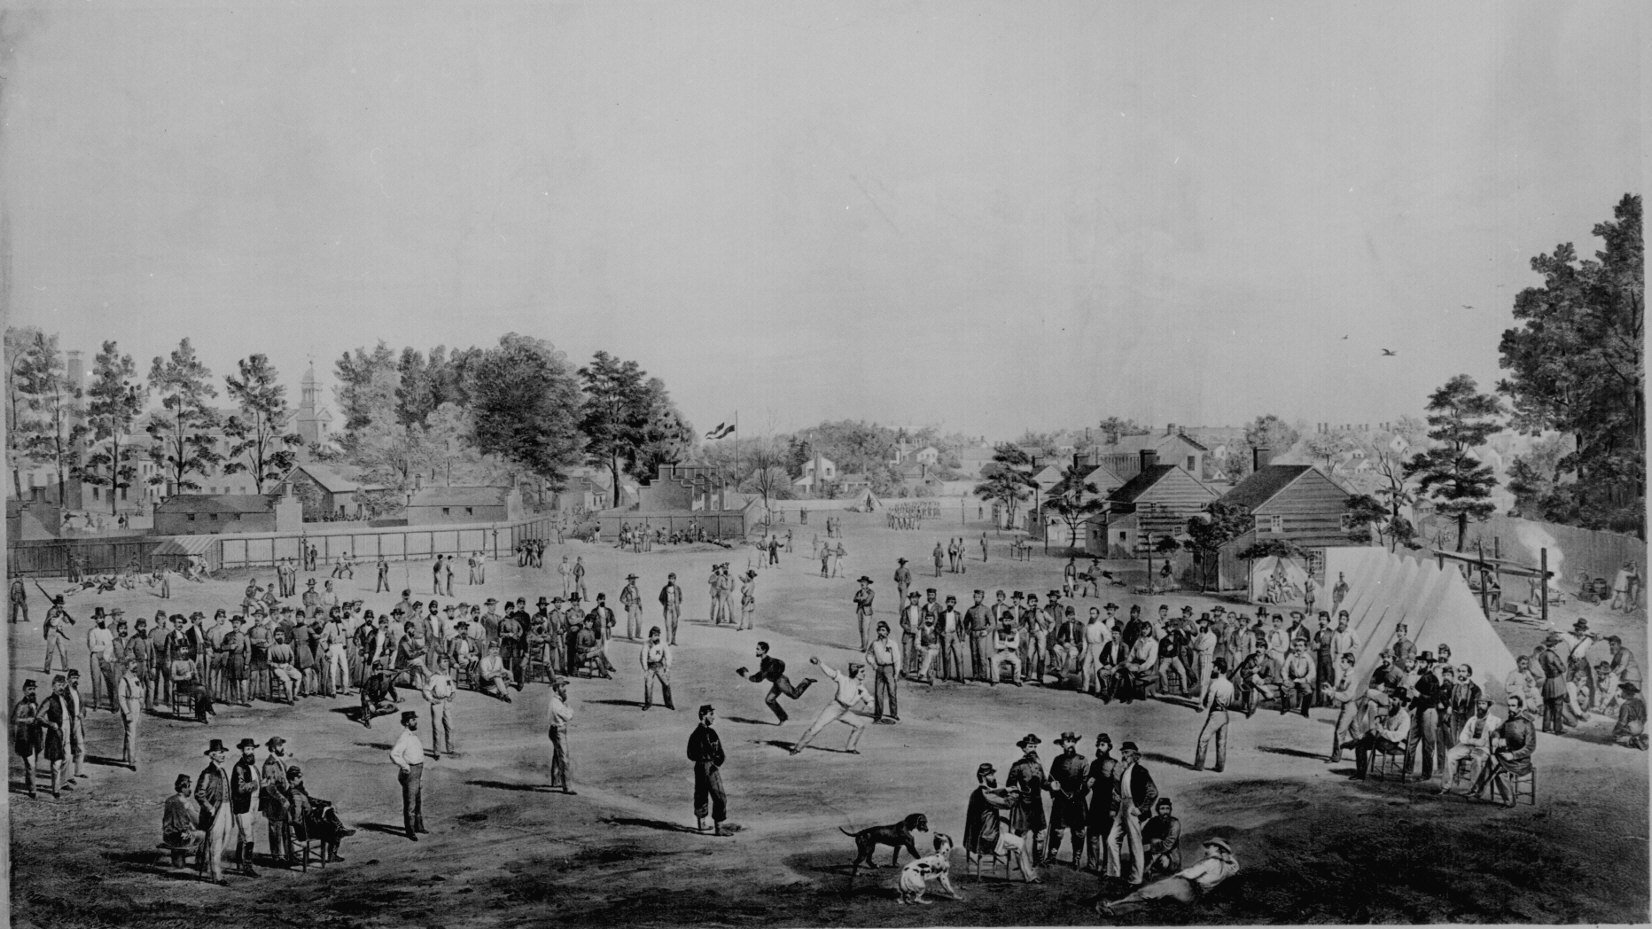 civil war prison camps essay Andersonville prison testimony of dr isaiah h white surgeon in charge of the prison camp under circumstances like those of the civil war, the remembrance is painful saddest episode.